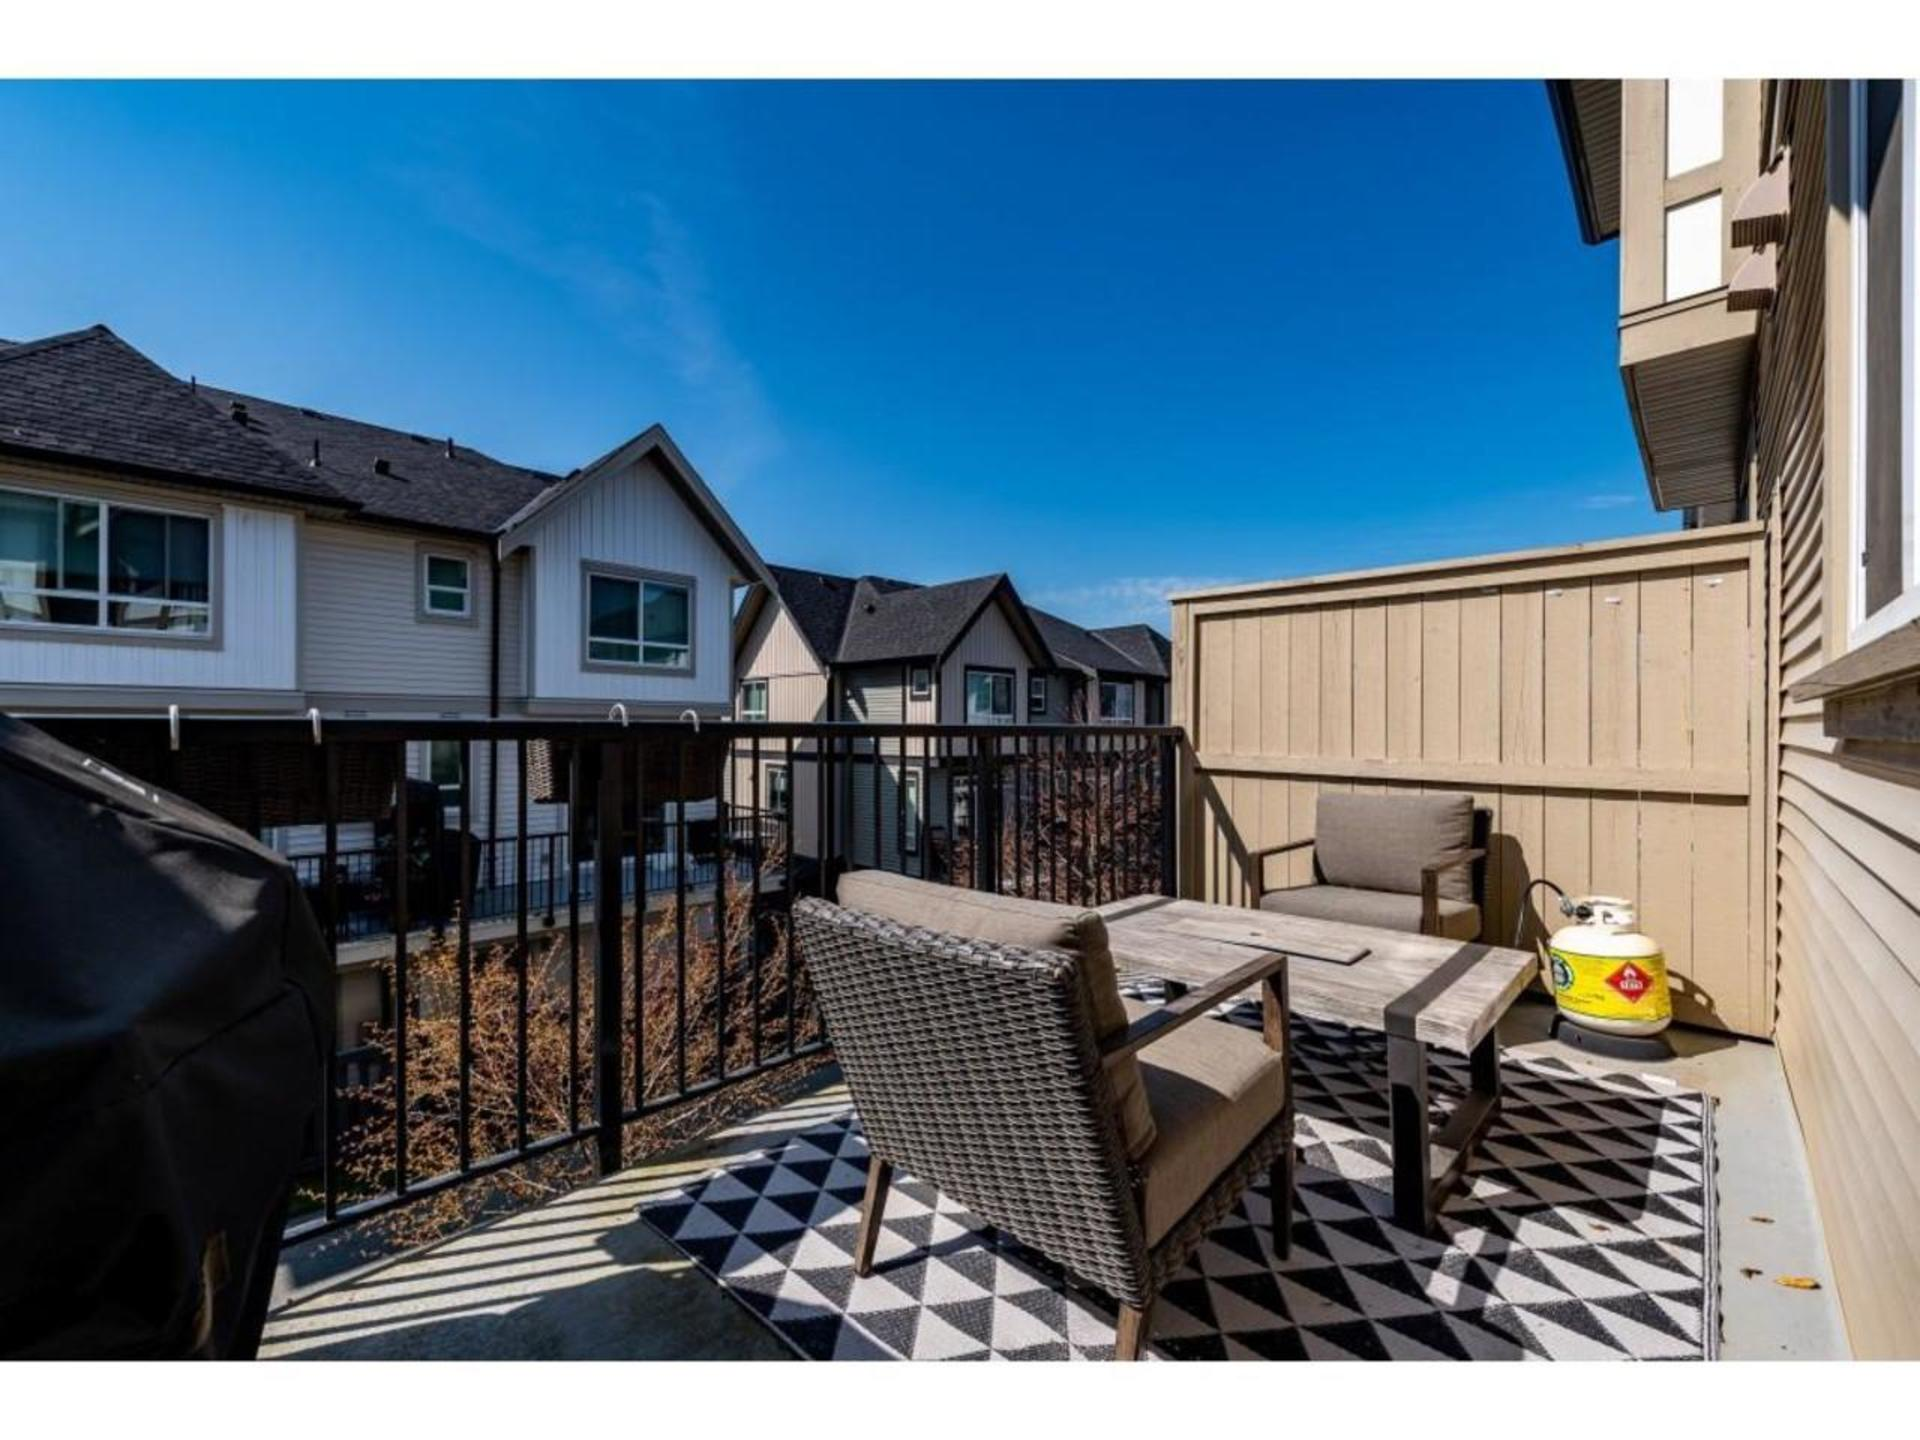 West facing balcony w/access right off the kitchen. Great spot to bbq or relax outside. at 94 - 30989 Westridge Place, Abbotsford West, Abbotsford